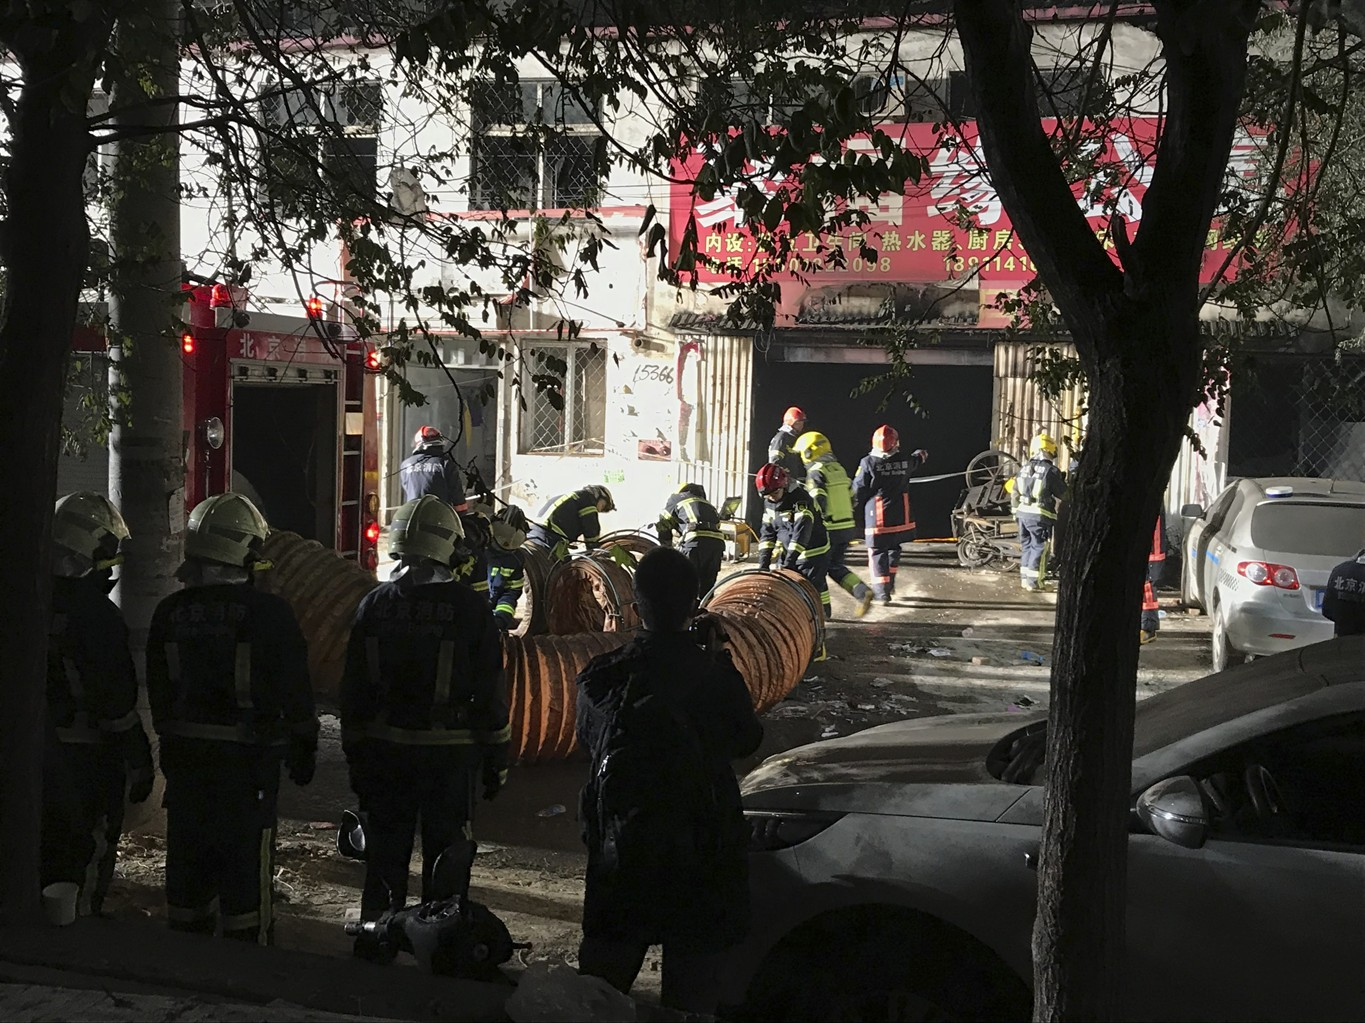 19 killed, 8 injured in Beijing house fire